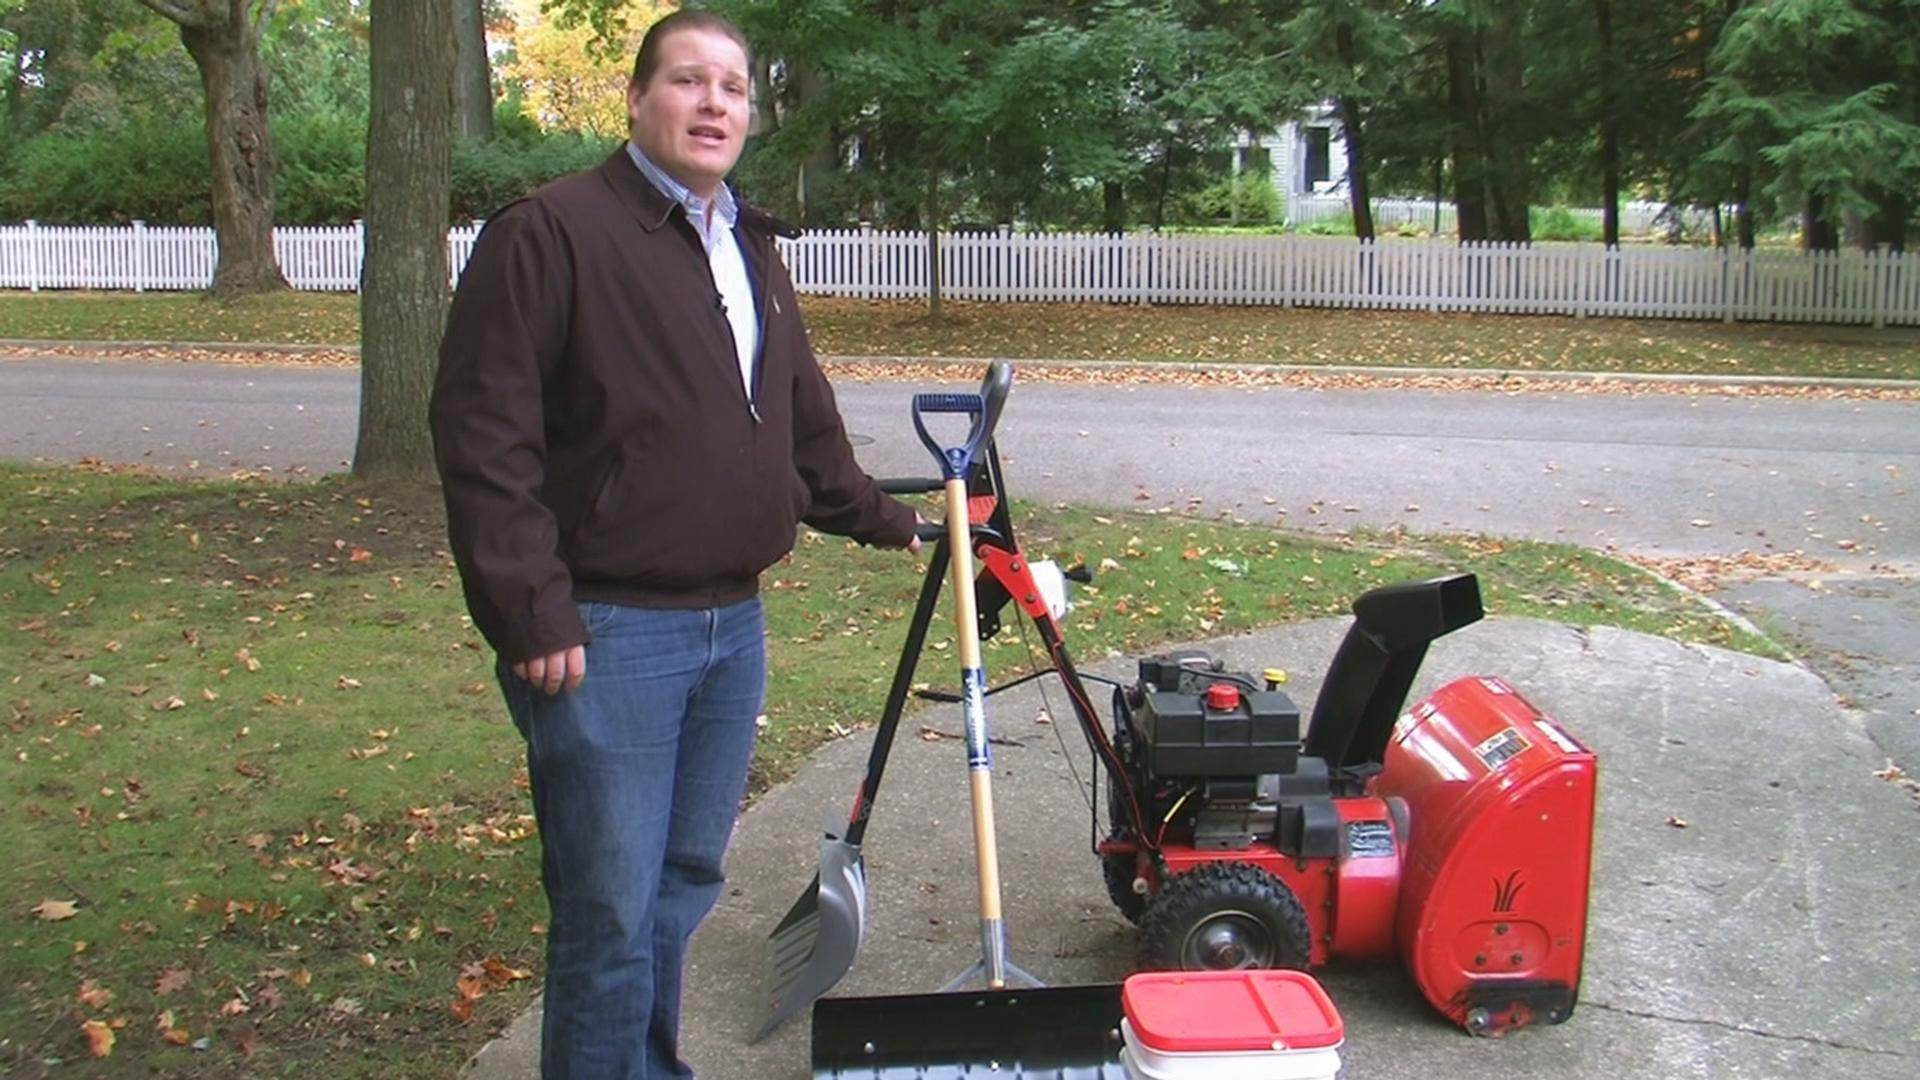 How to Prepare Your Snow Blower for Winter